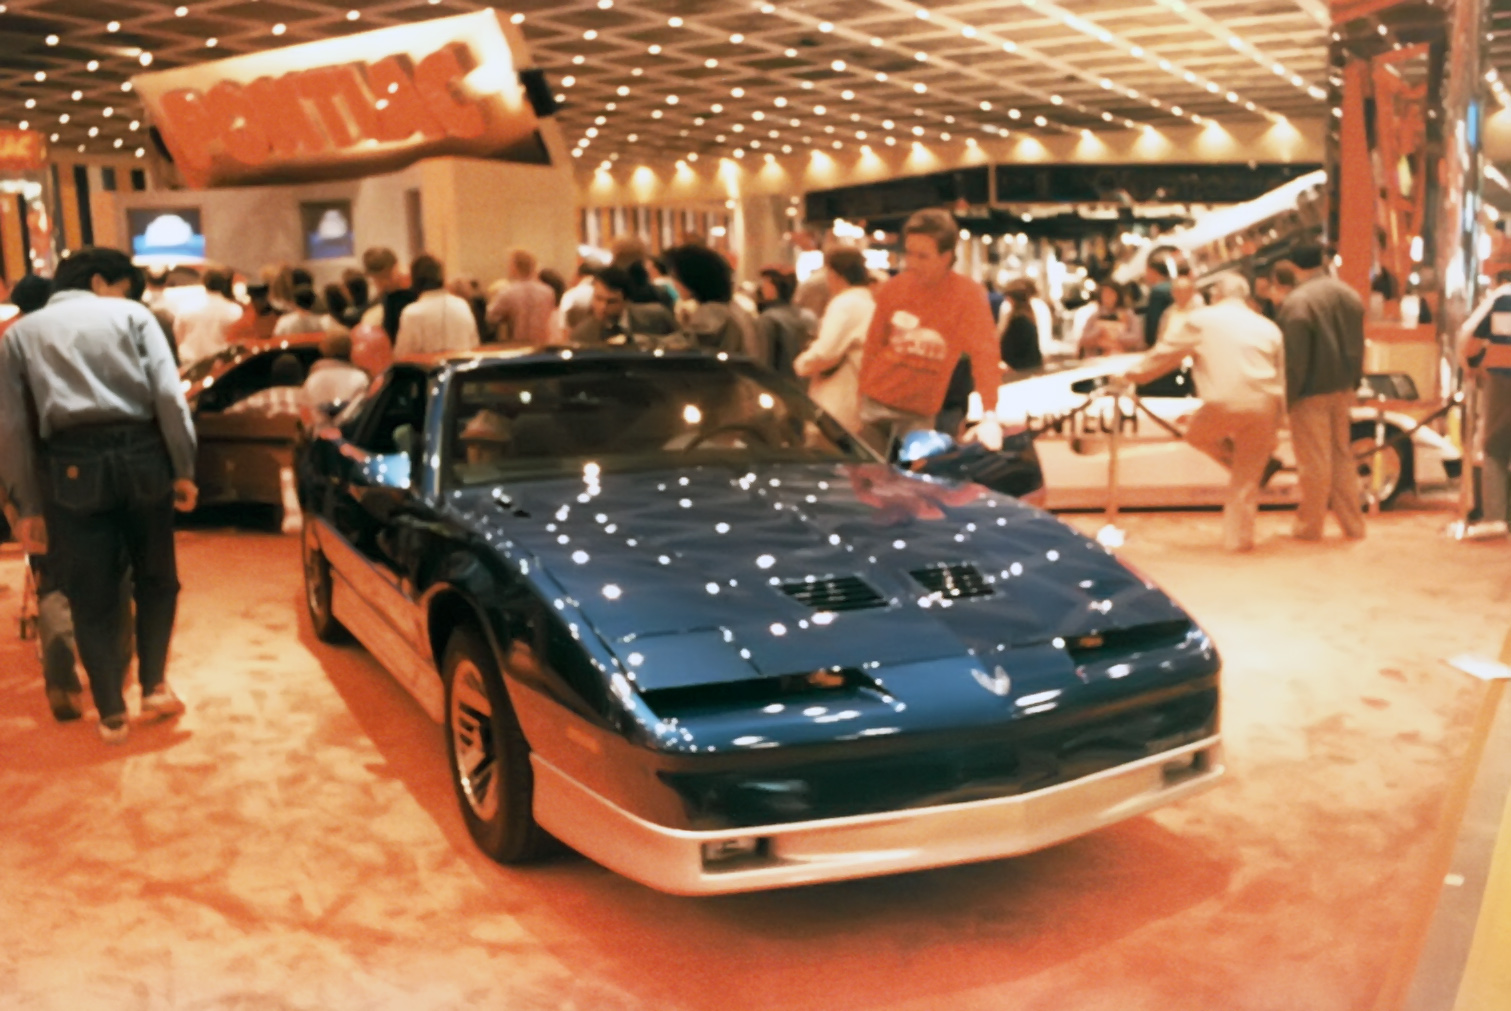 I was pretty much in love with the Pontiac Firebirds at this point in my life! Only Fiero's were cooler.